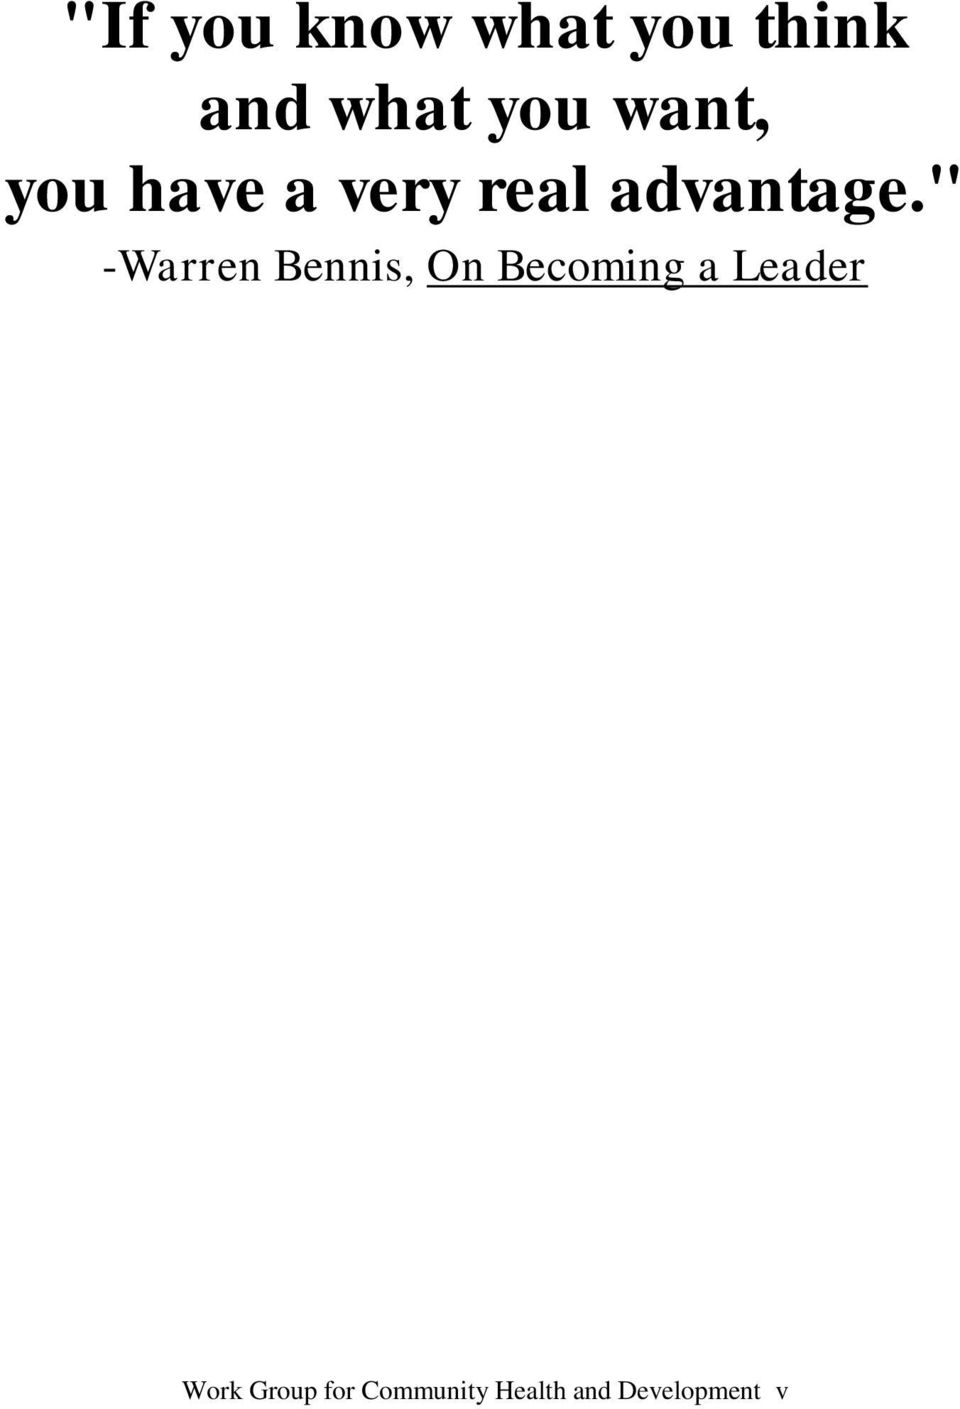 """ -Warren Bennis, On Becoming a Leader"